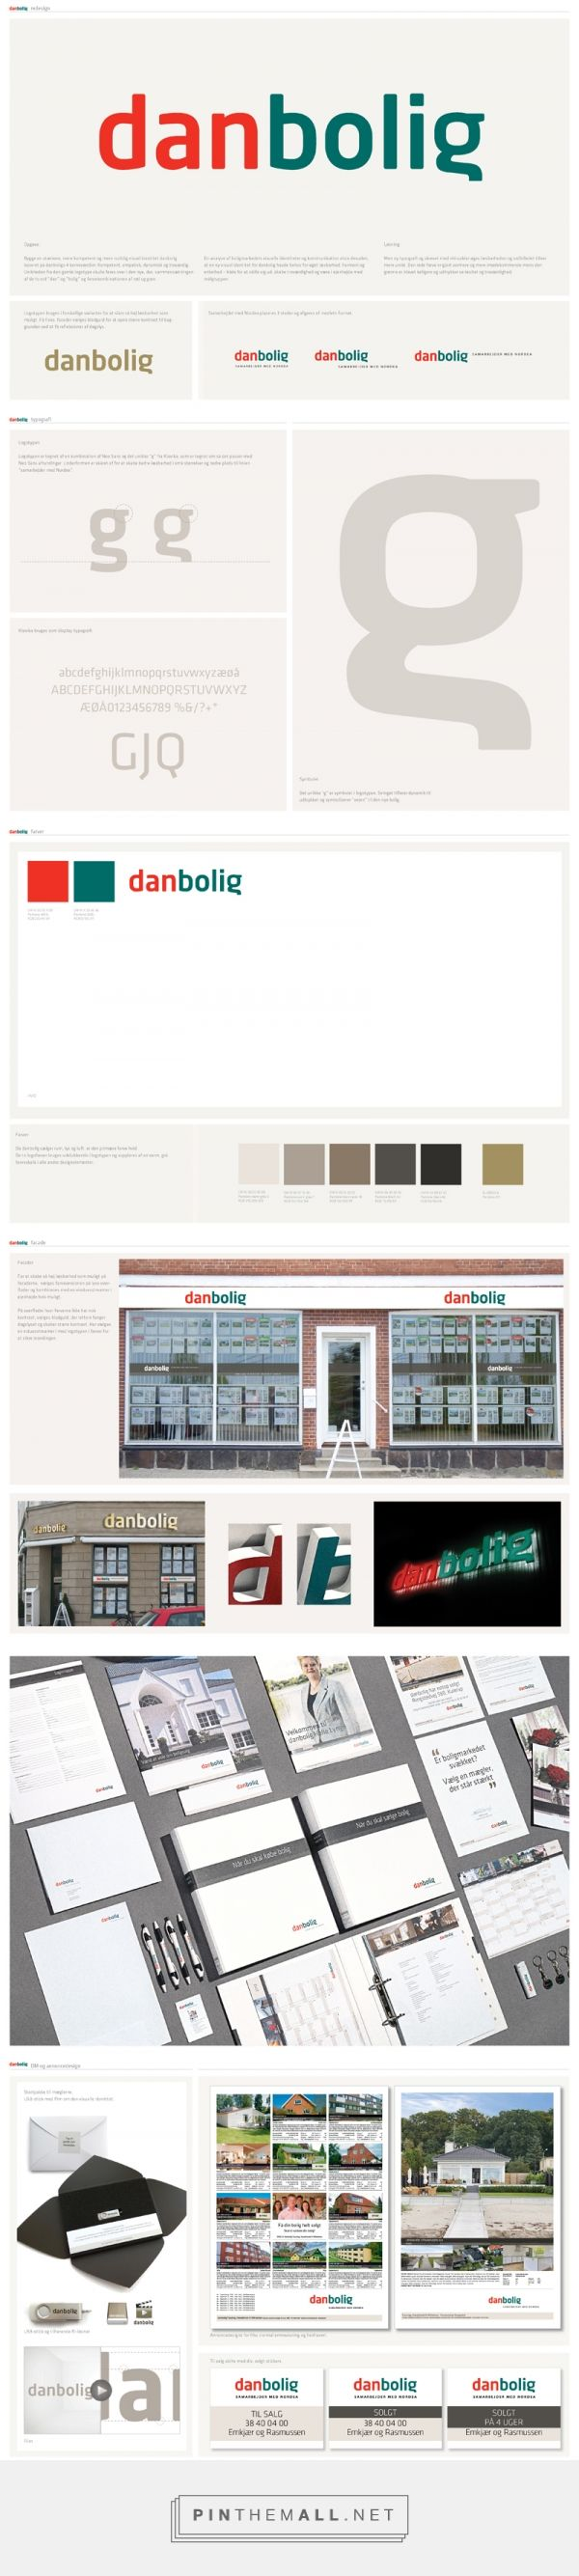 danbolig real estate visual identity on Behance - created via http://pinthemall.net